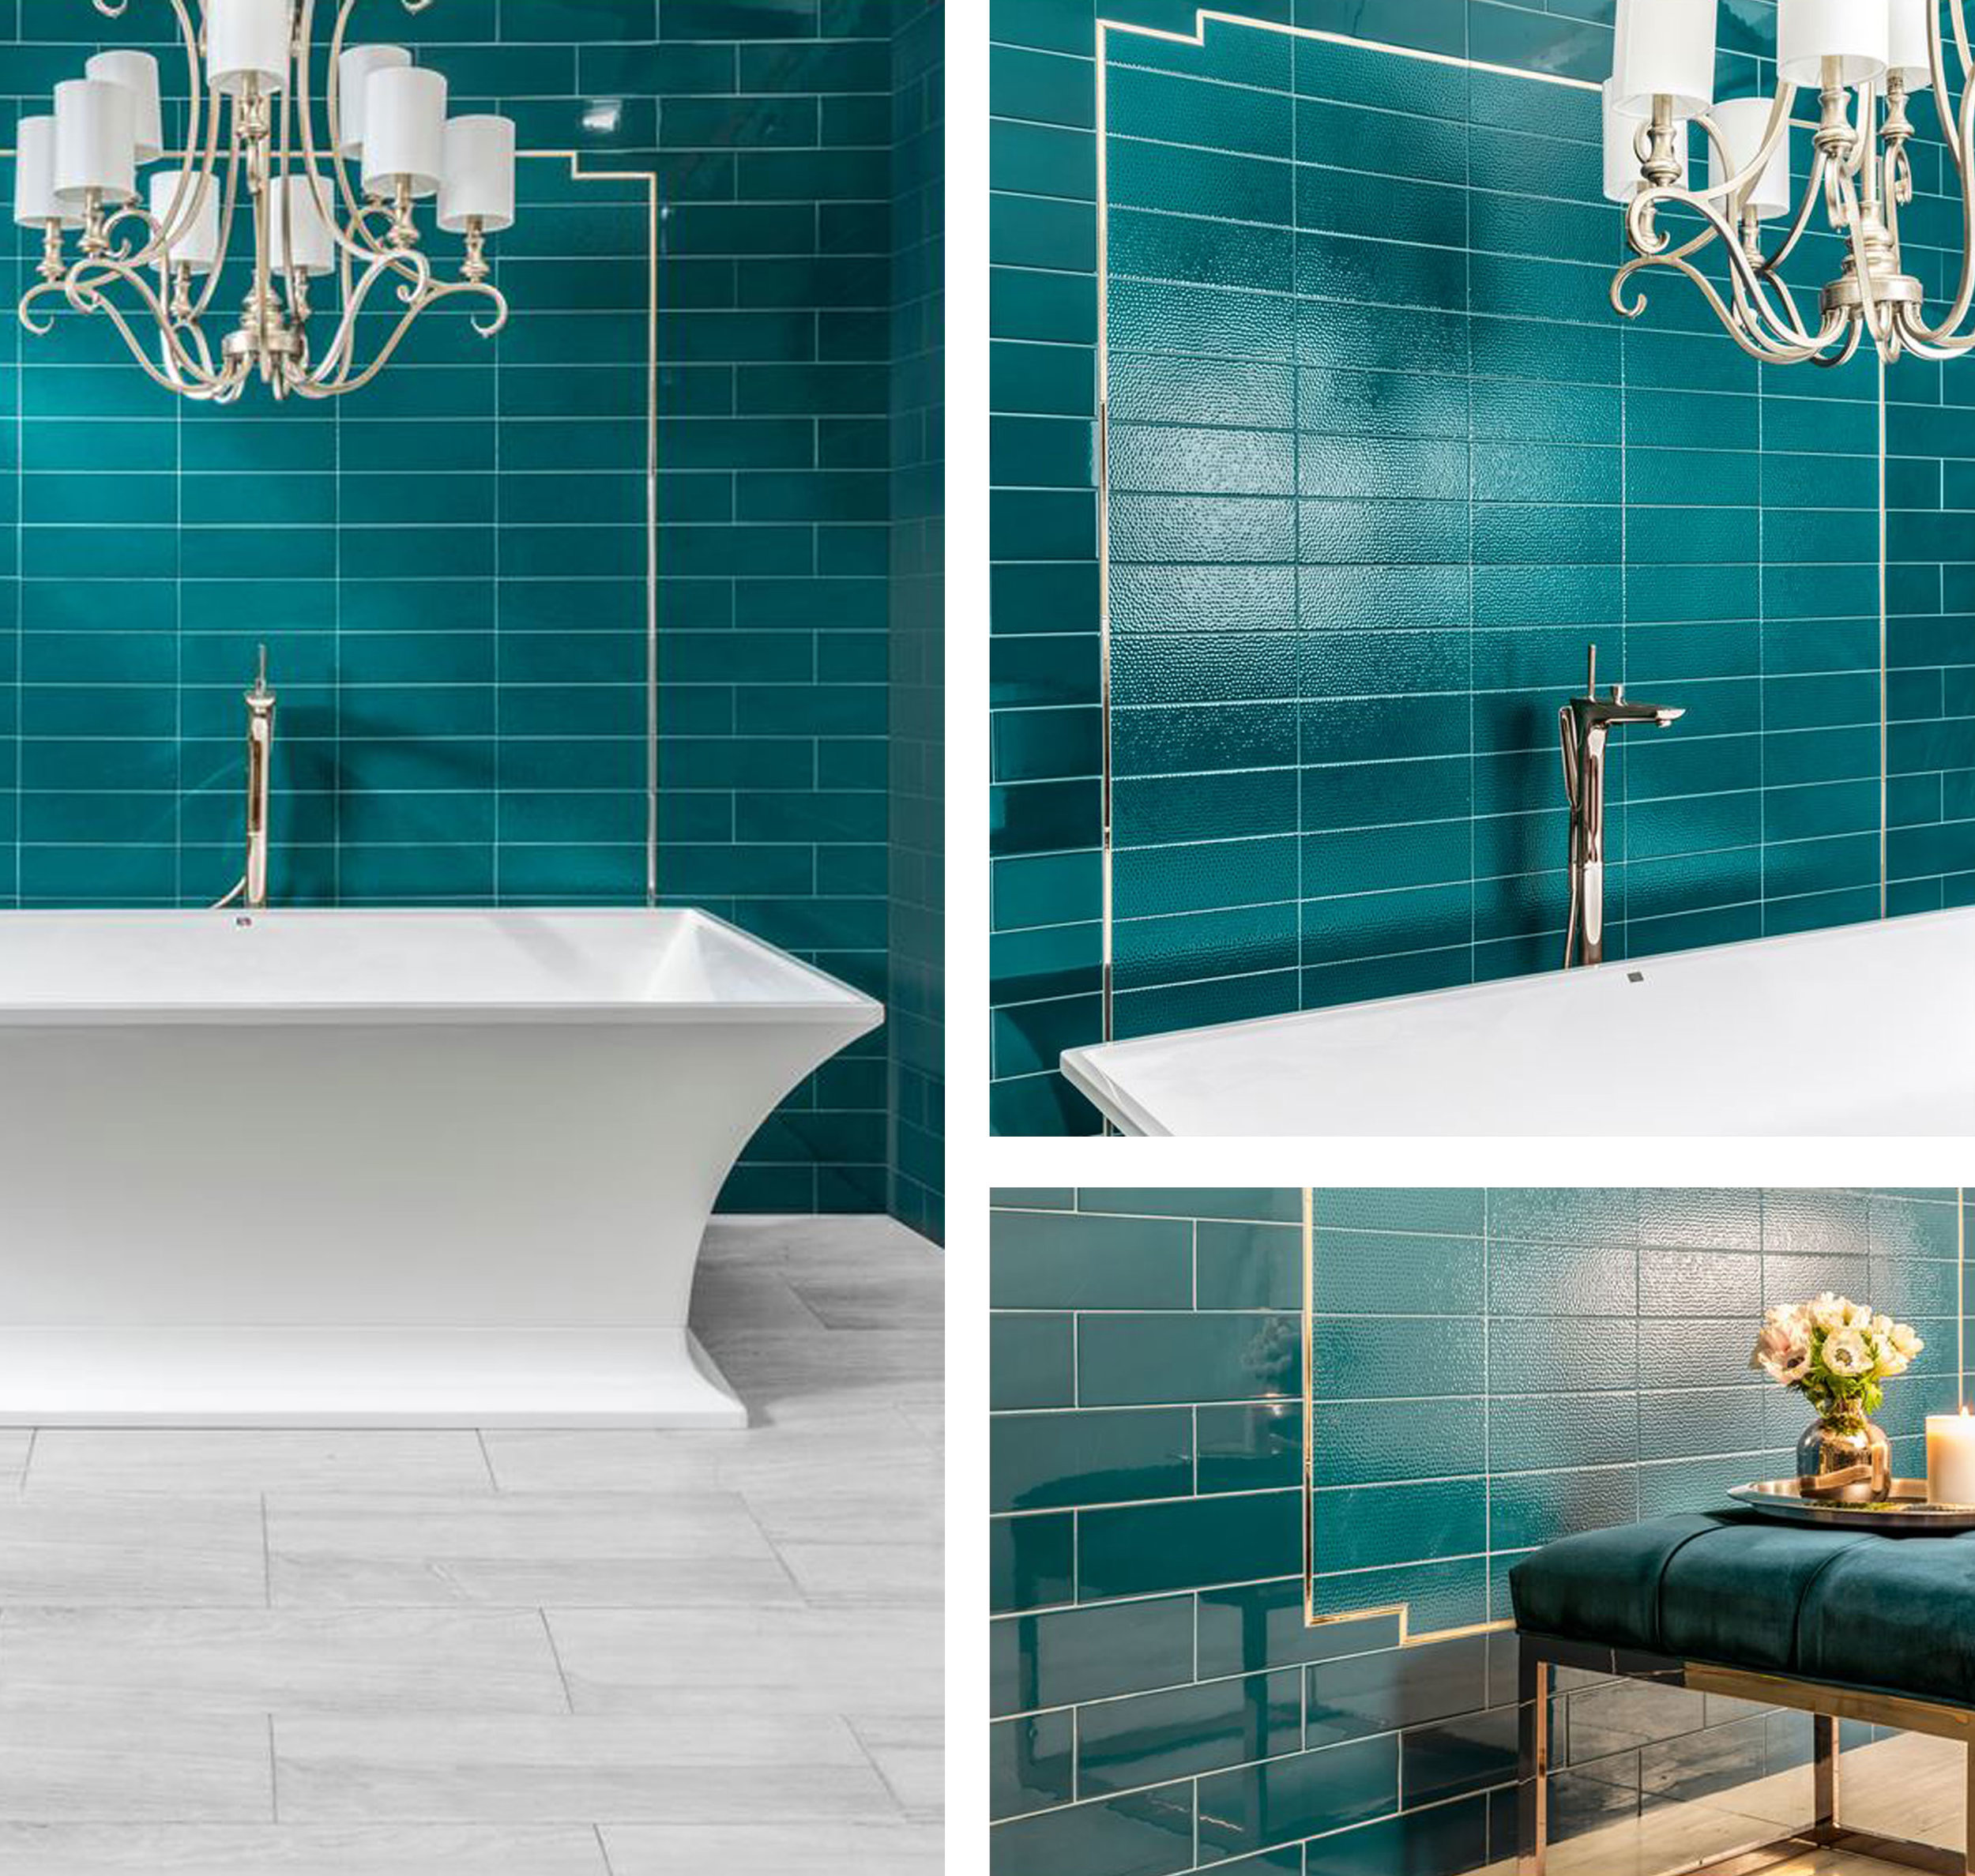 aqua tiles, bathroom tiles, cool tiles, hammered tiles, subway tiles, glossy tiles, polished, green, turquoise, green tiles, classy bathroom, bathtub, traditional, matthew quinn